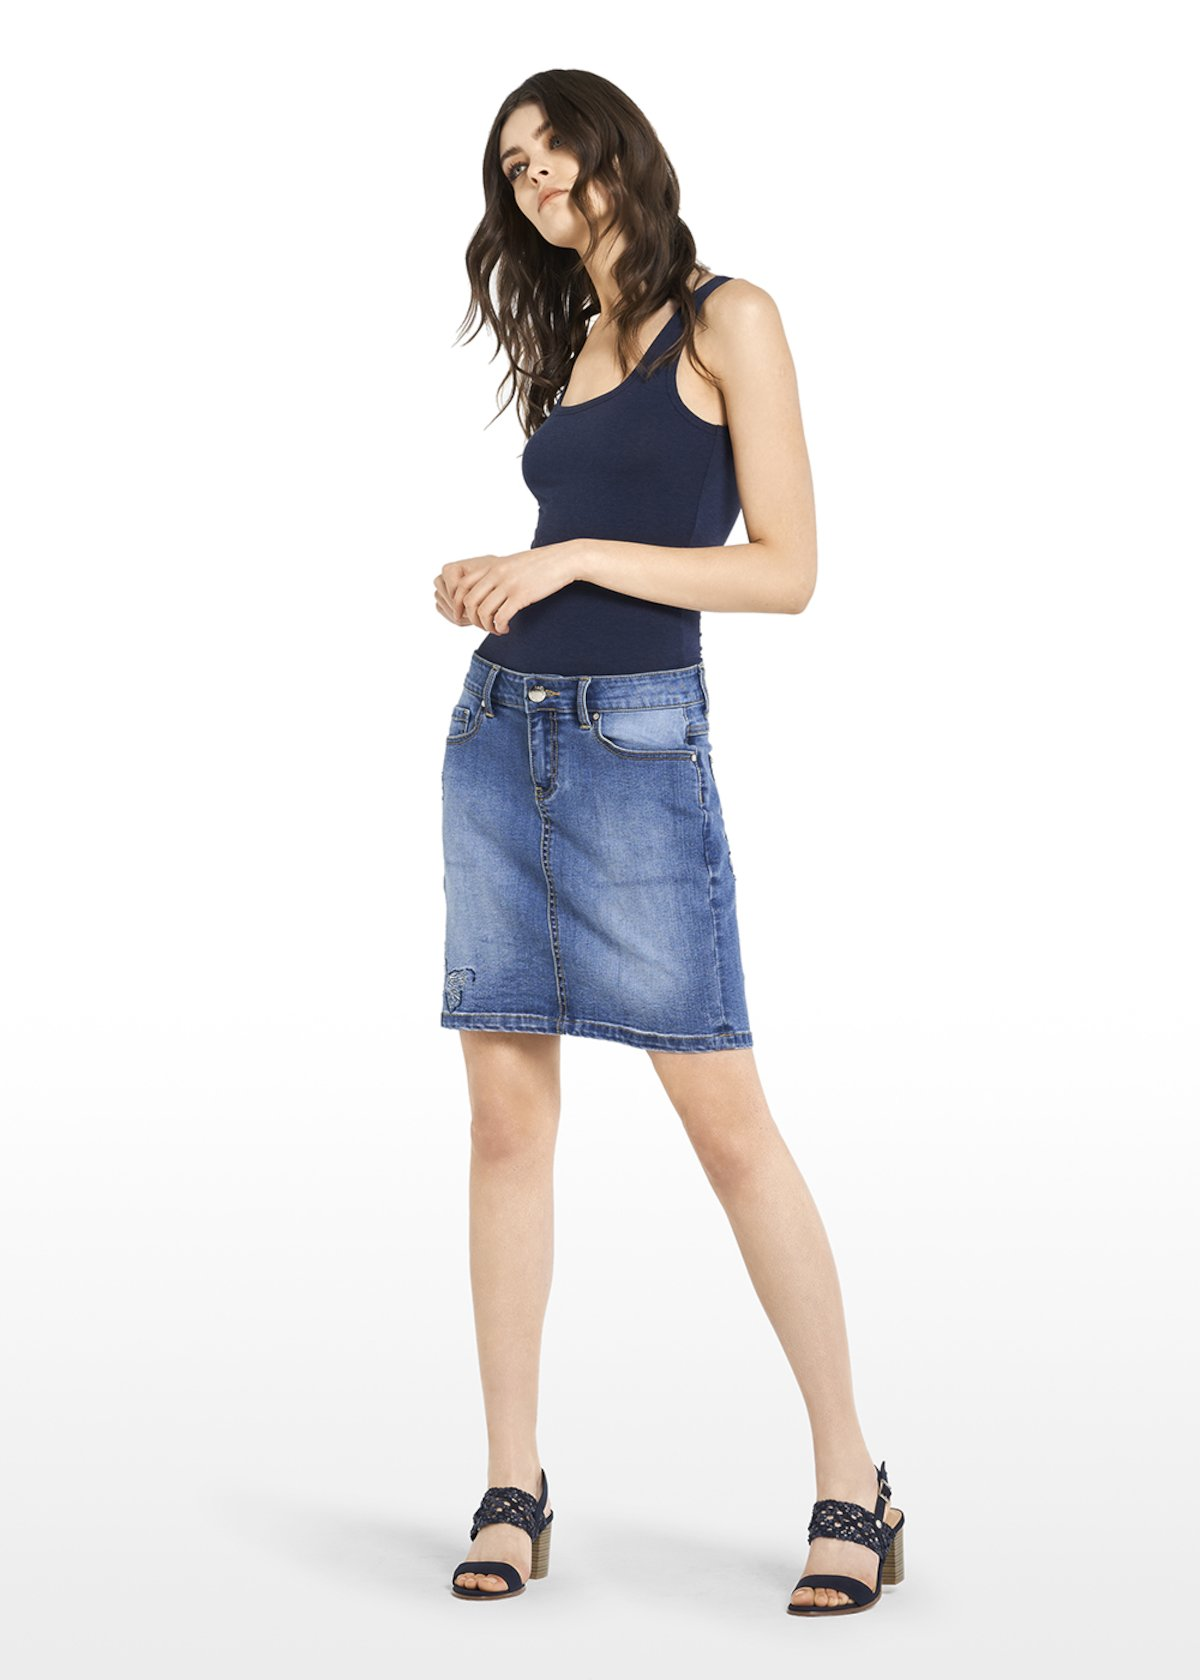 Gaylor Denim skirt with embroidered butterflies - Medium Denim - Woman